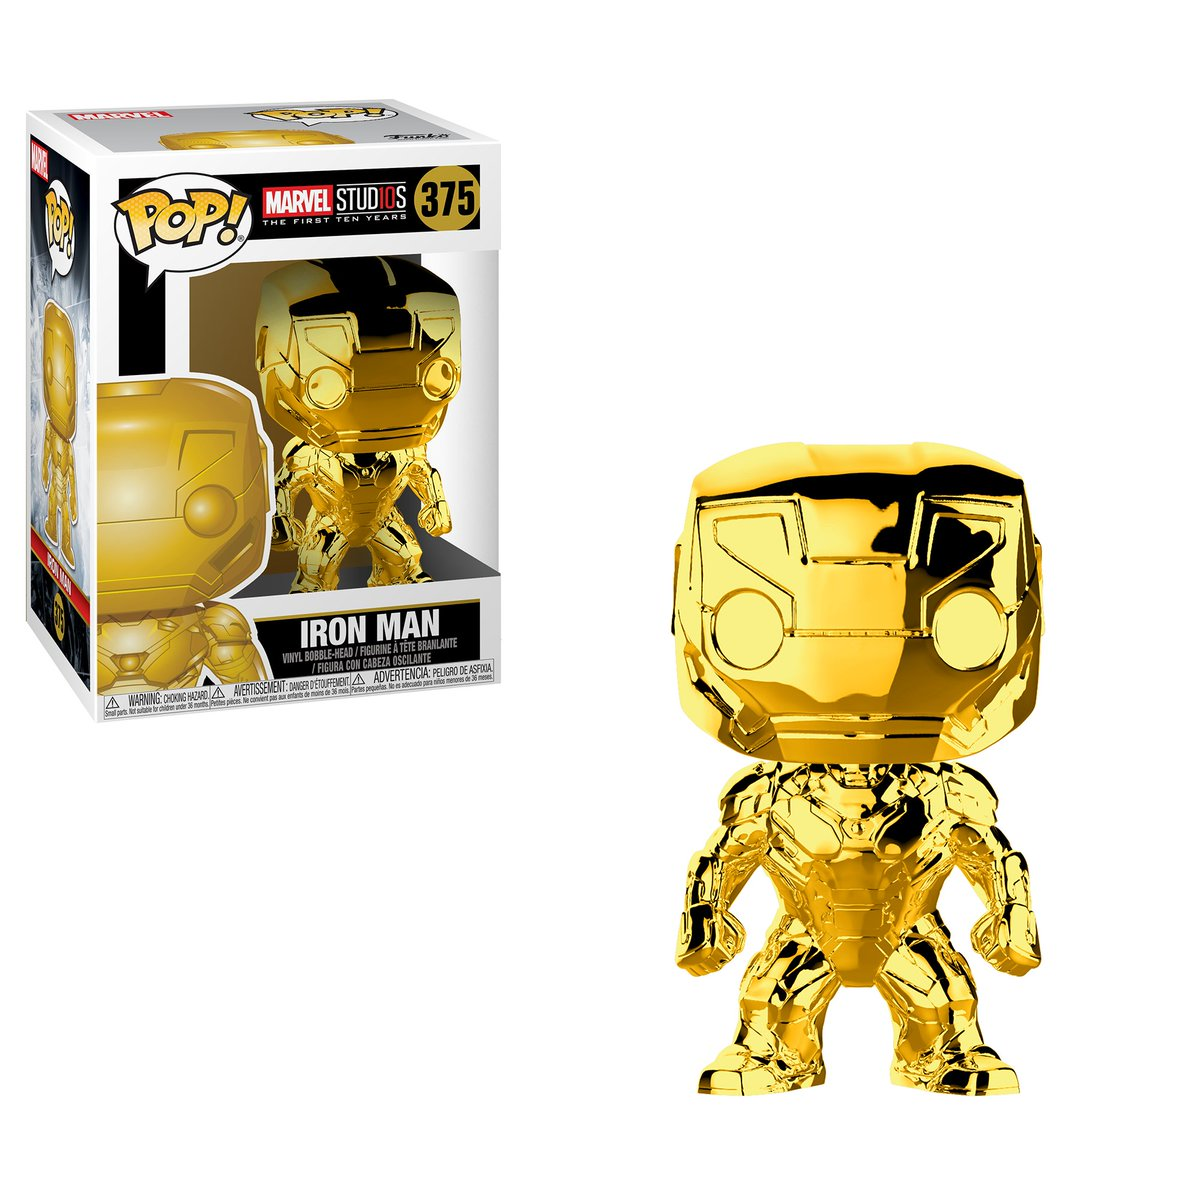 RT & follow @OriginalFunko for the chance to win a Marvel Studios 10 gold chrome Iron Man Pop!